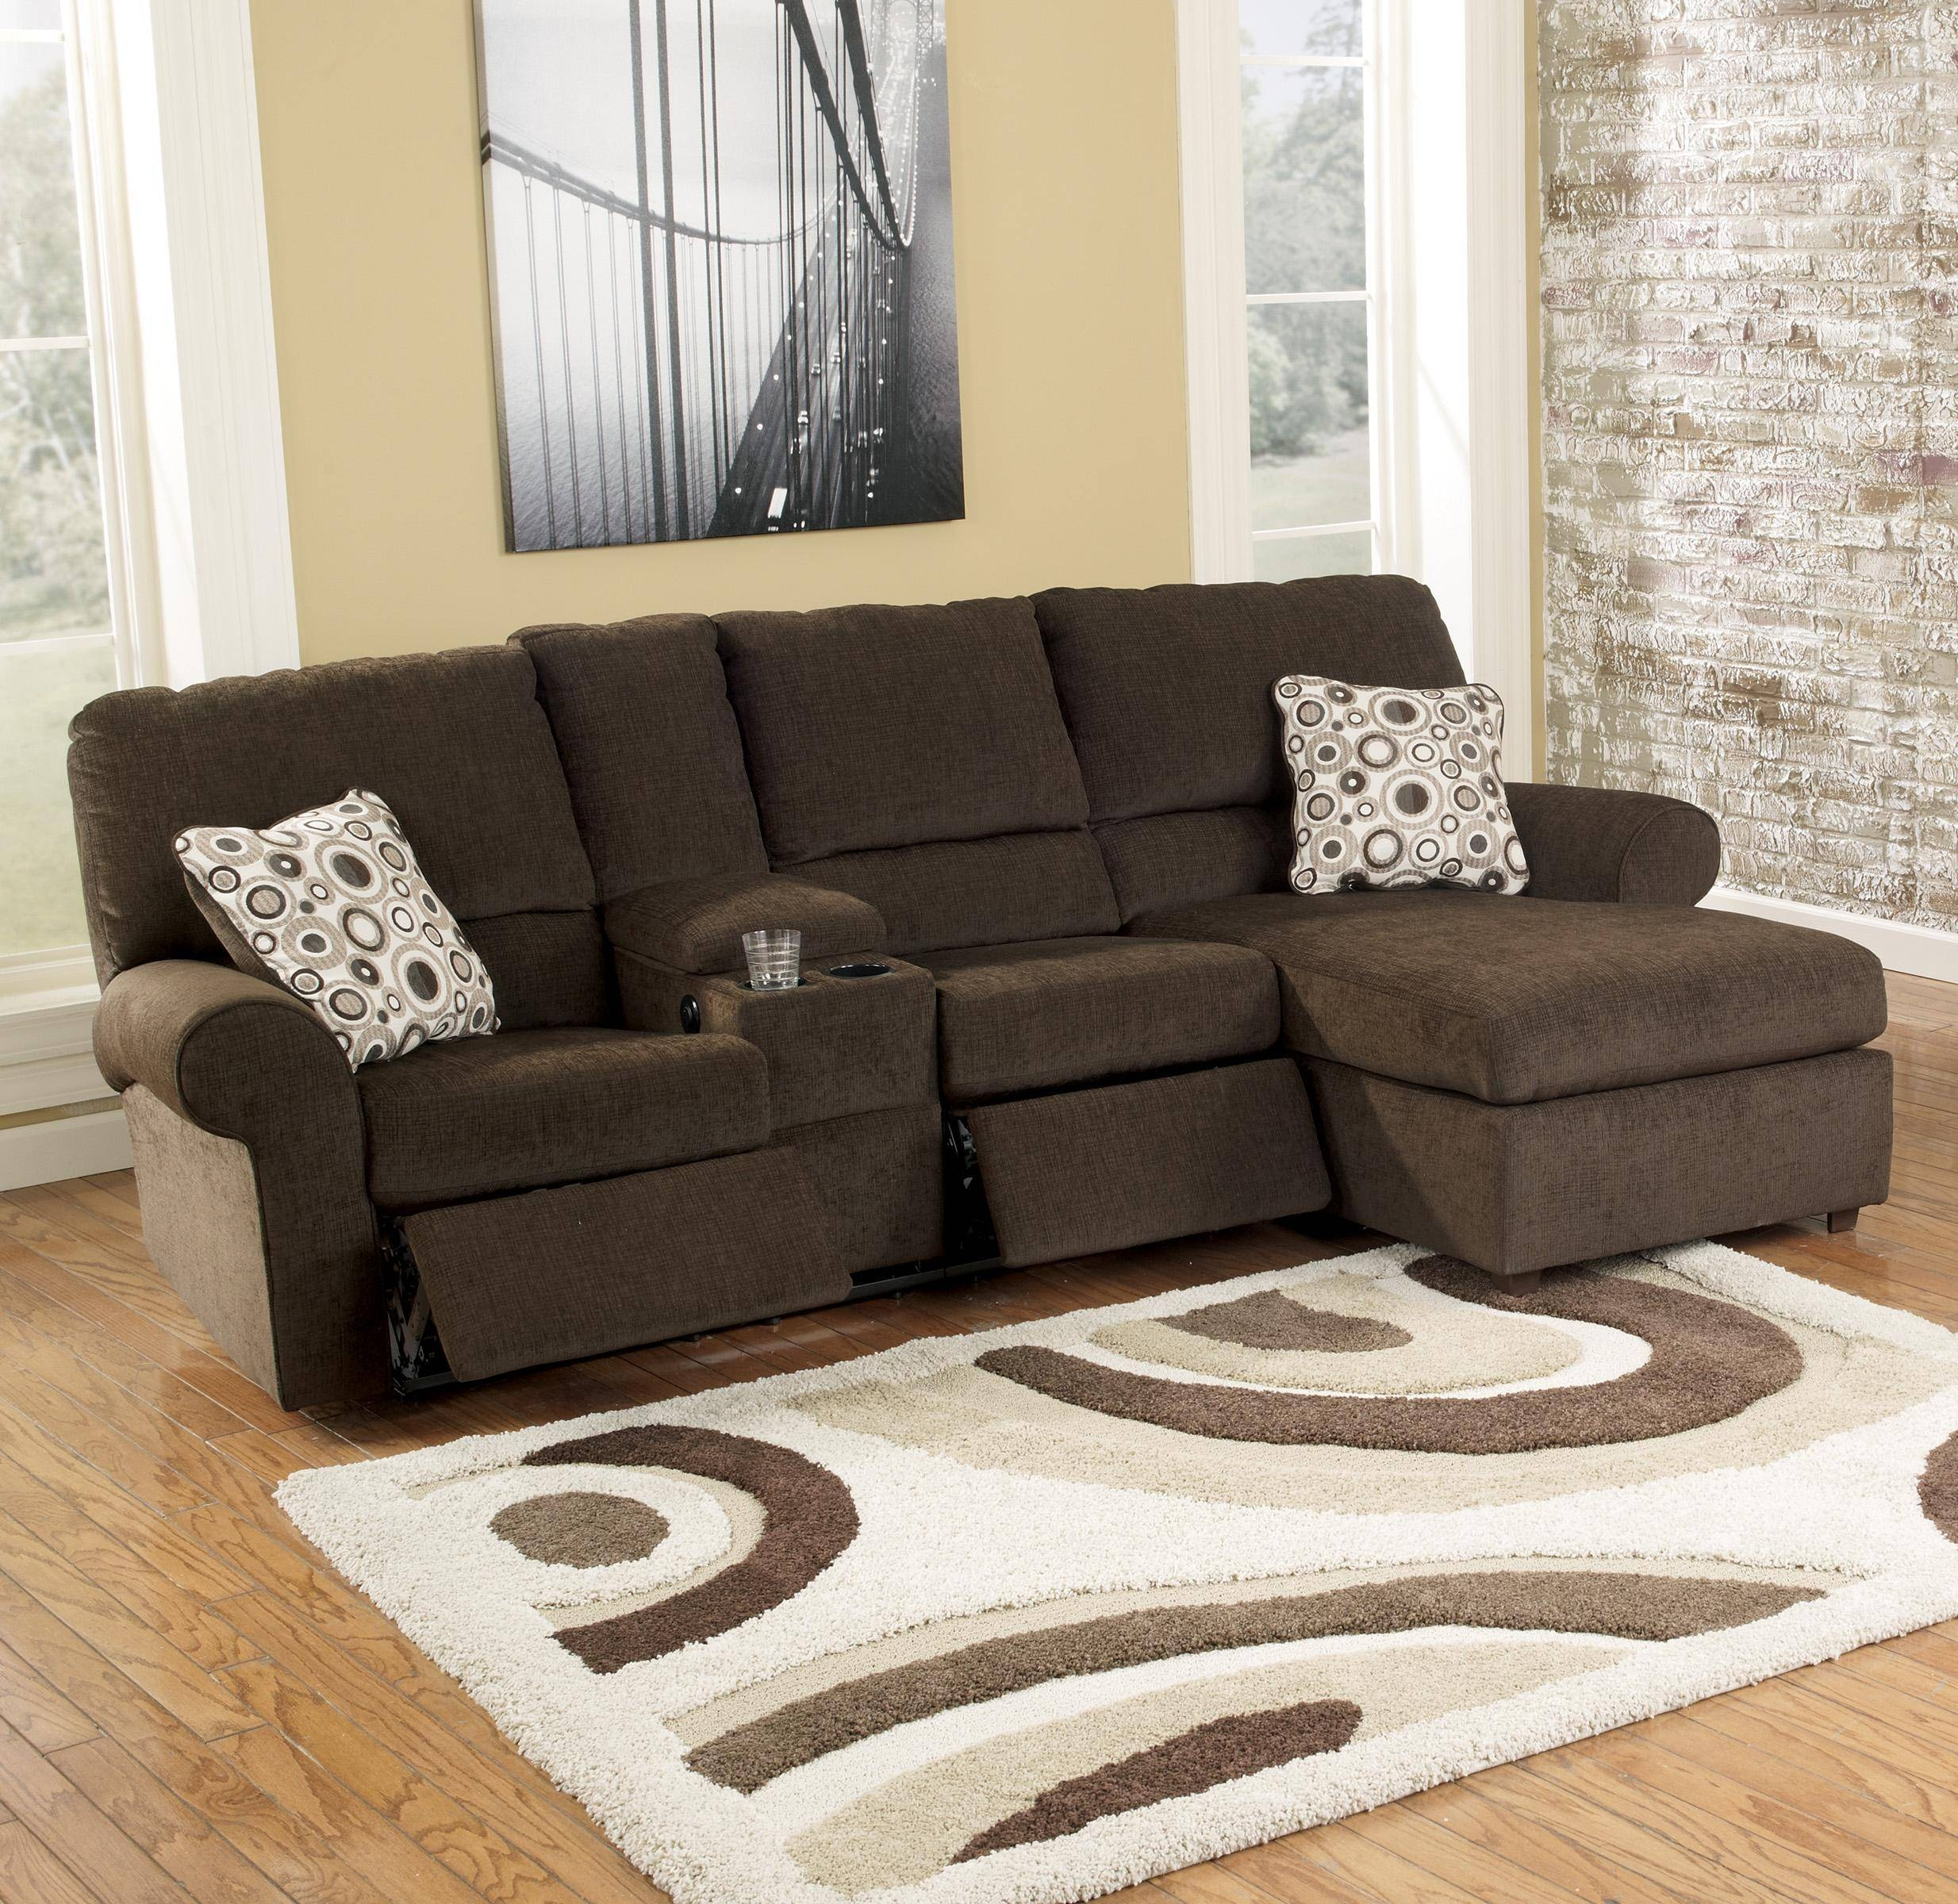 Recliner Sofa With Chaise Lounge | Centerfieldbar intended for Sofas And Chaises Lounge Sets (Image 13 of 15)